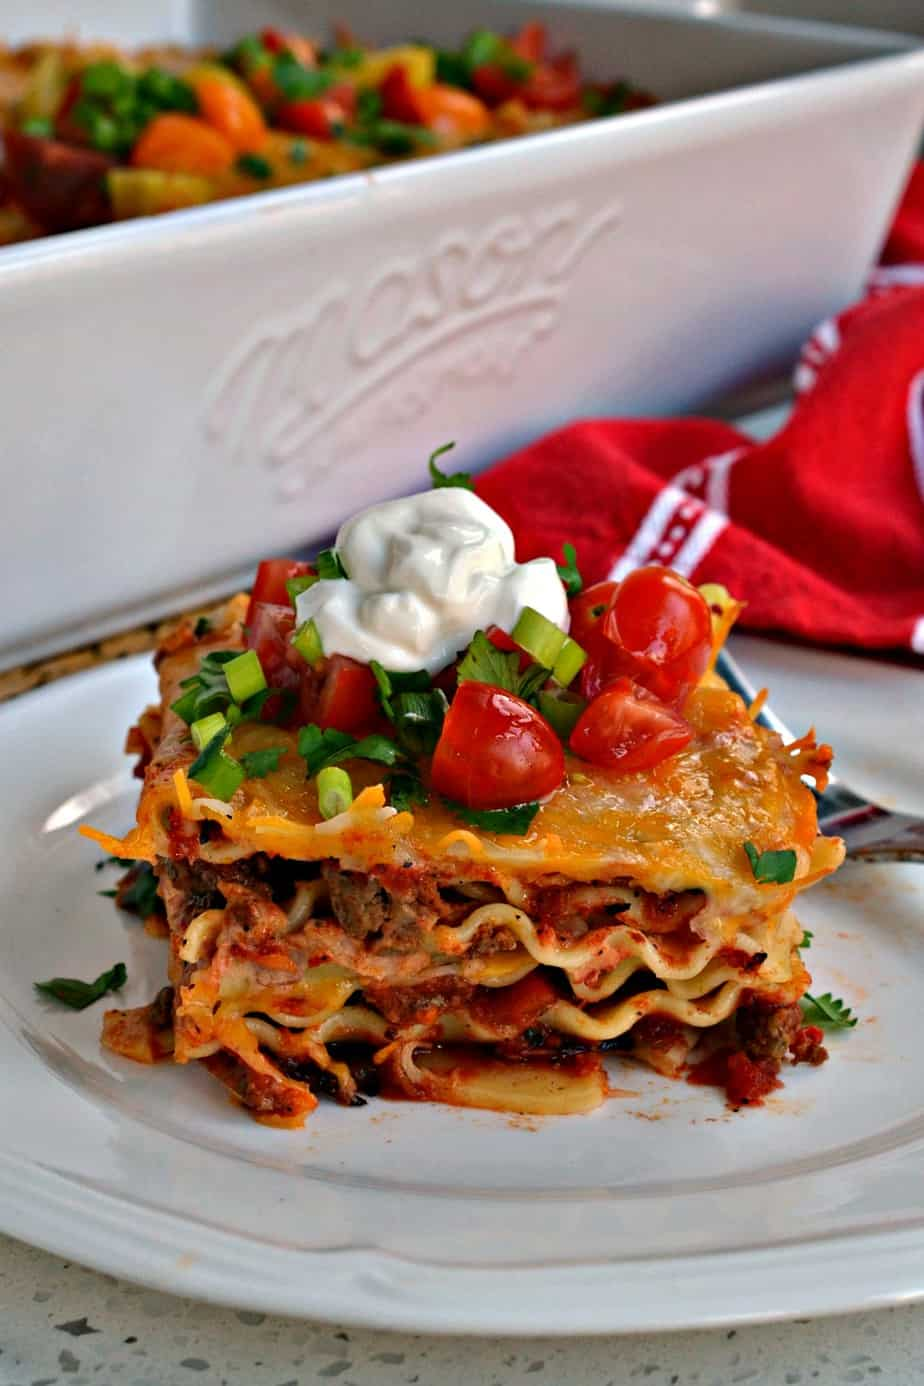 This Mexican Lasagna has layers of melted cheese, taco seasoned ground beef, and creamy refried beans.